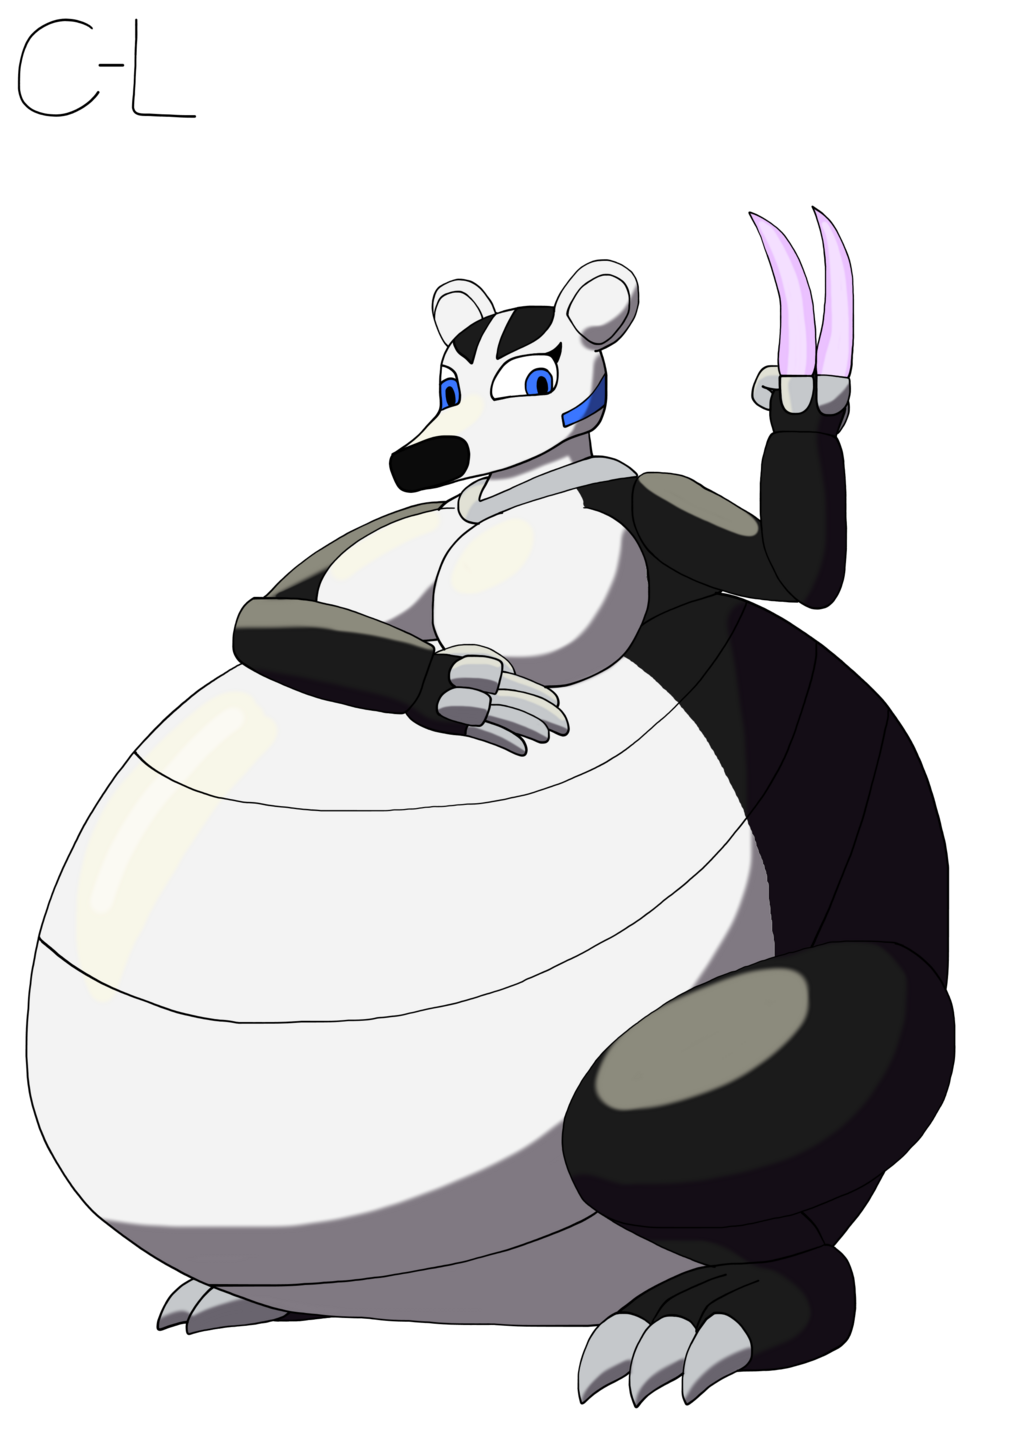 Rosa the badger robot bigger